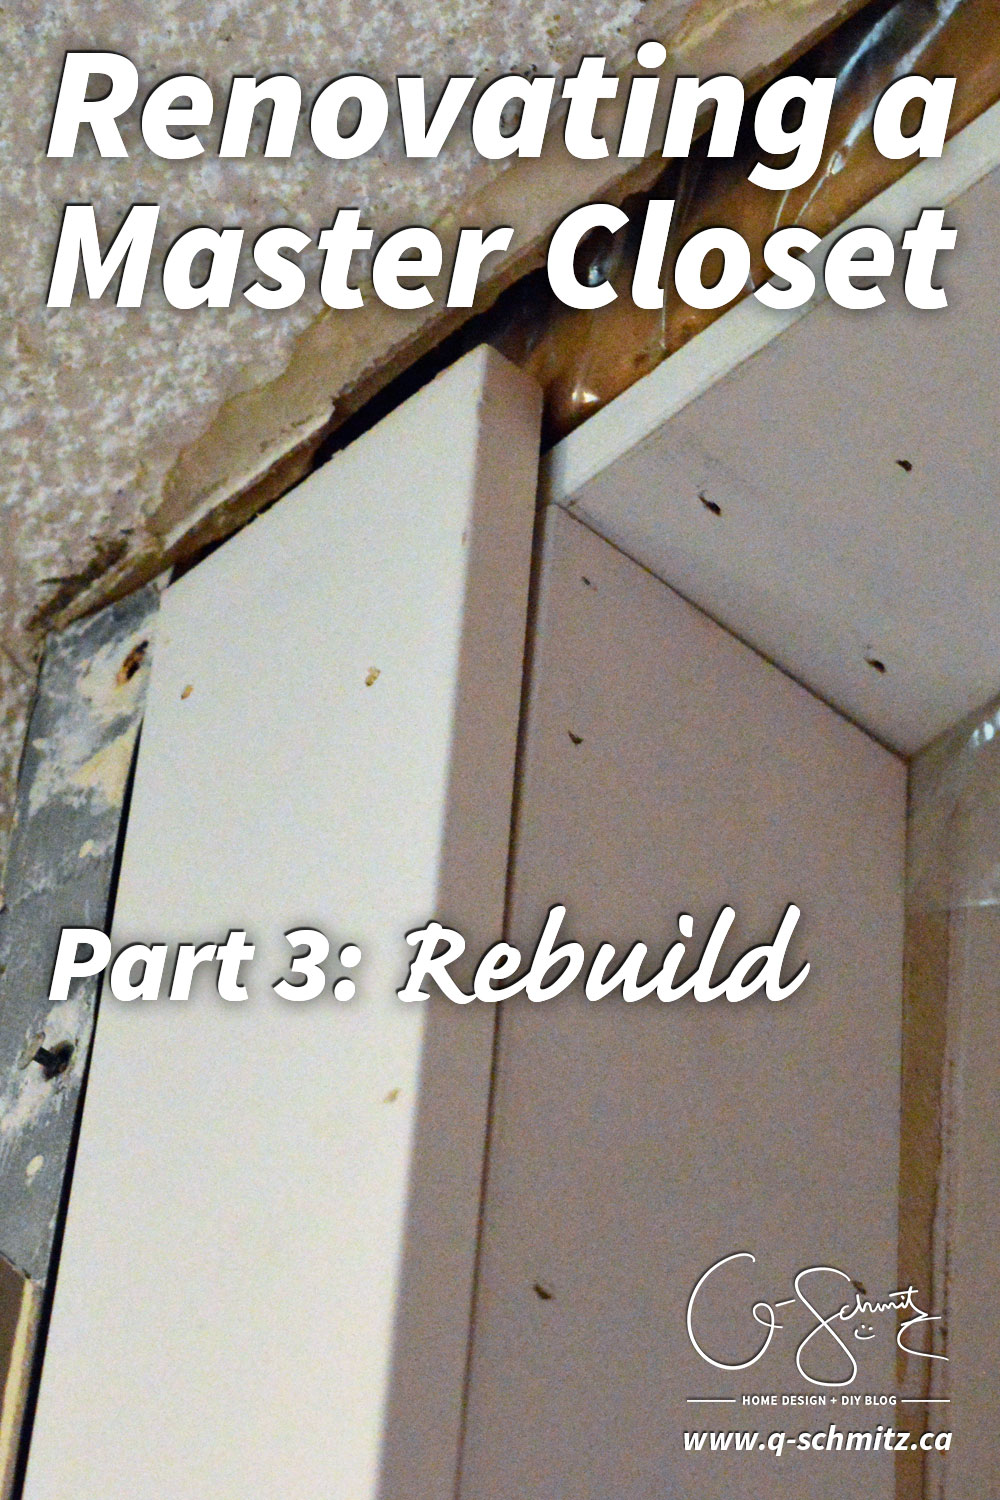 Once you have done a bit of planning and demolition, the next step in renovating a master closet is the rebuild phase - so let's get ready!